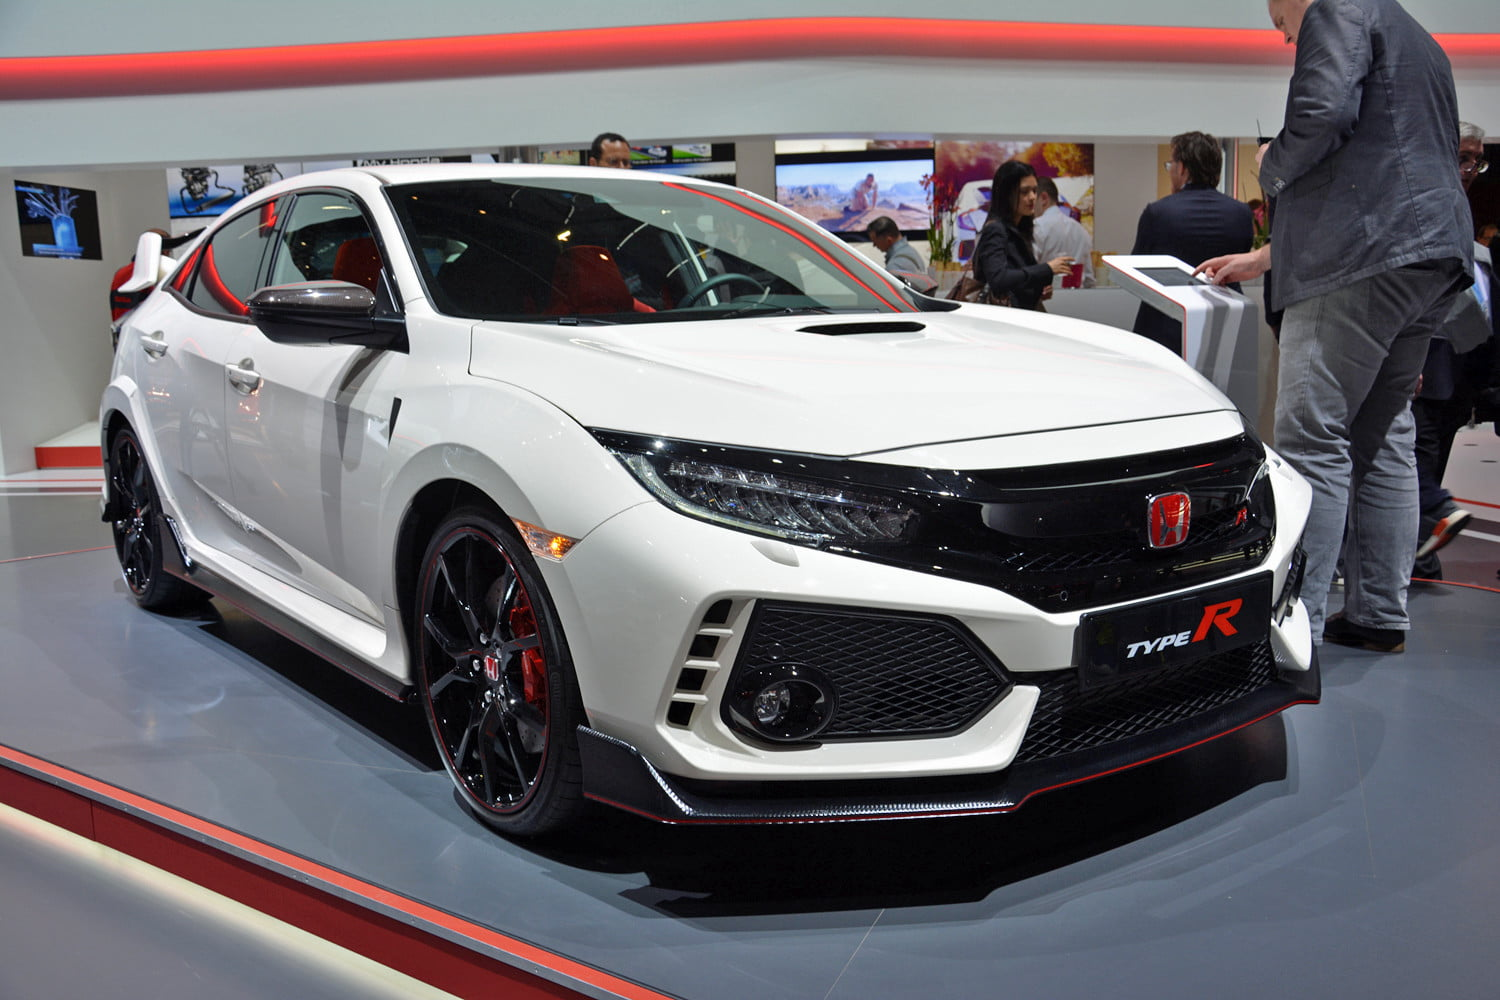 Honda S 2017 Civic Type R Is Coming To U And It Will Be Worth The Wait